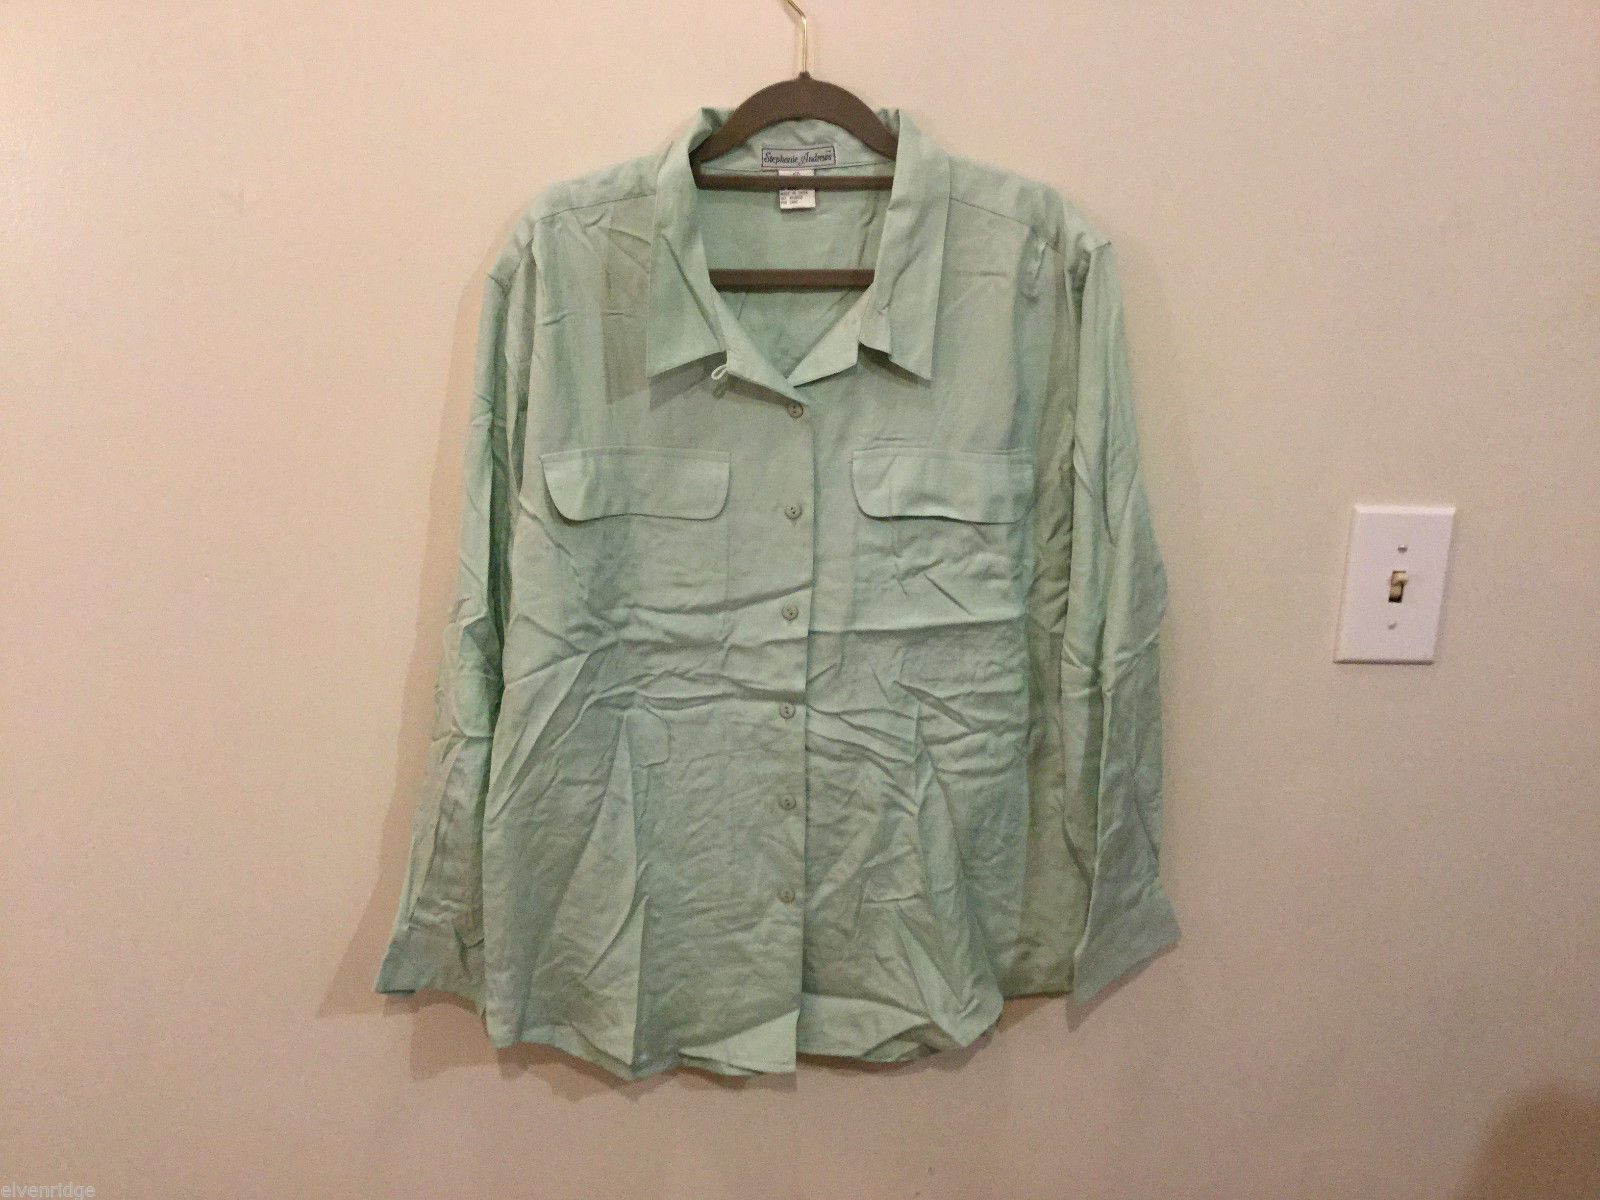 Stephanie Andrews Ladies Mint Green 100% Silk Buttons Down Blouse Shirt, Size M